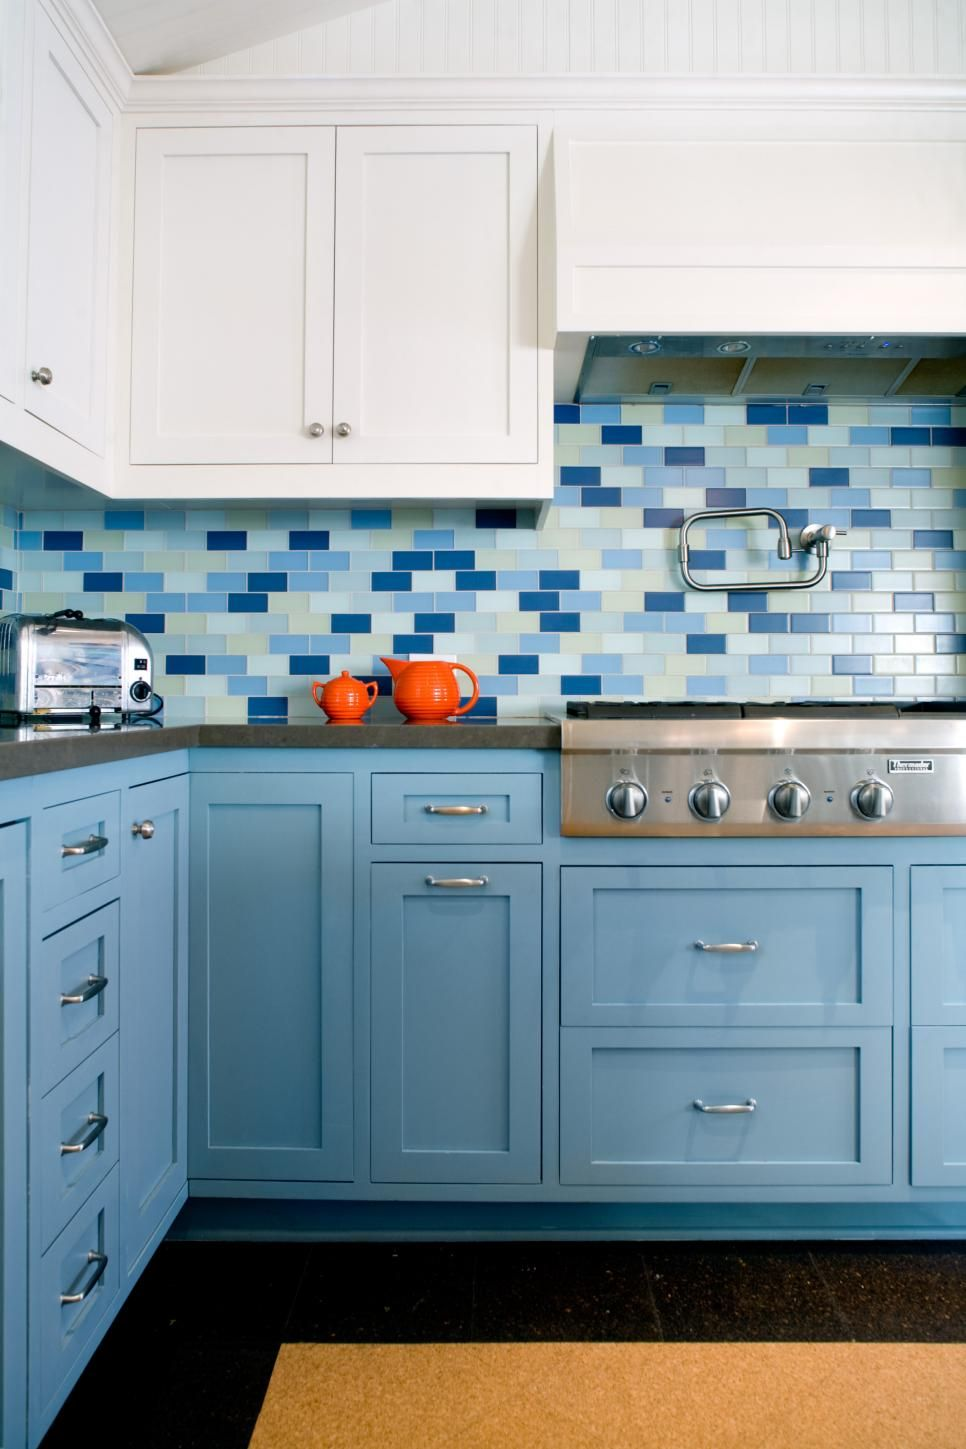 11 Creative Subway Tile Backsplash Ideas | Subway tiles, Kitchen ...